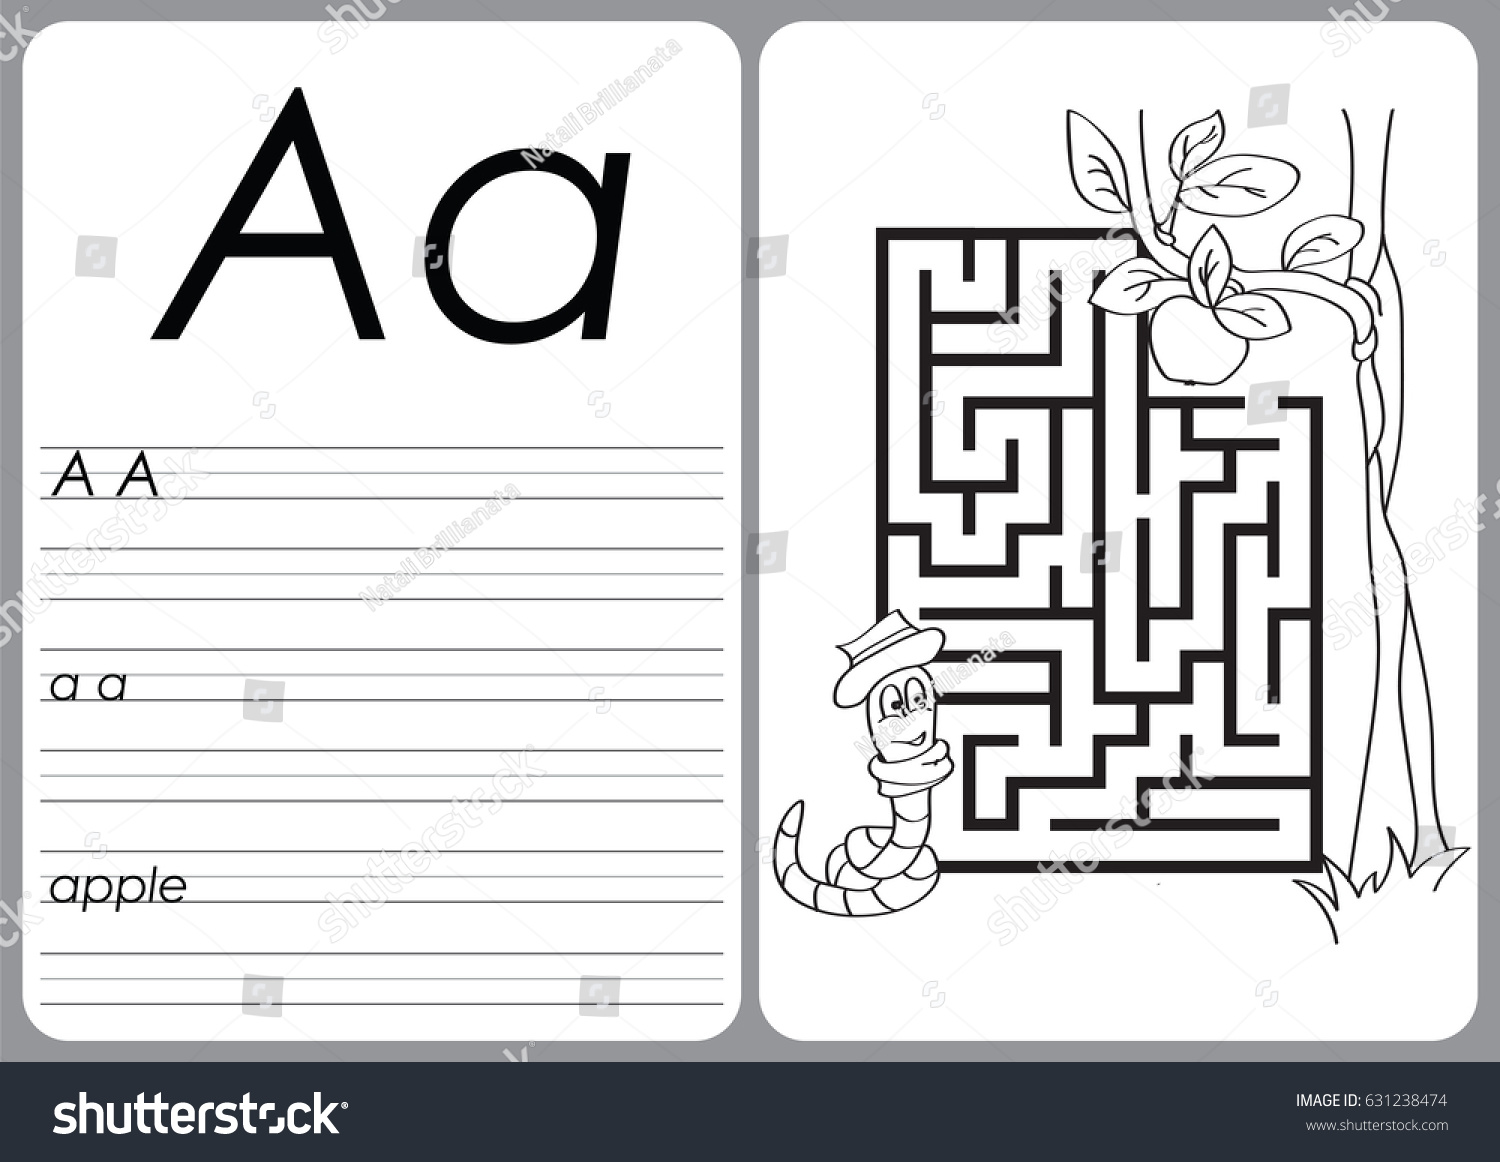 Alphabet Az Puzzle Worksheet Exercises Kids Stock Vector